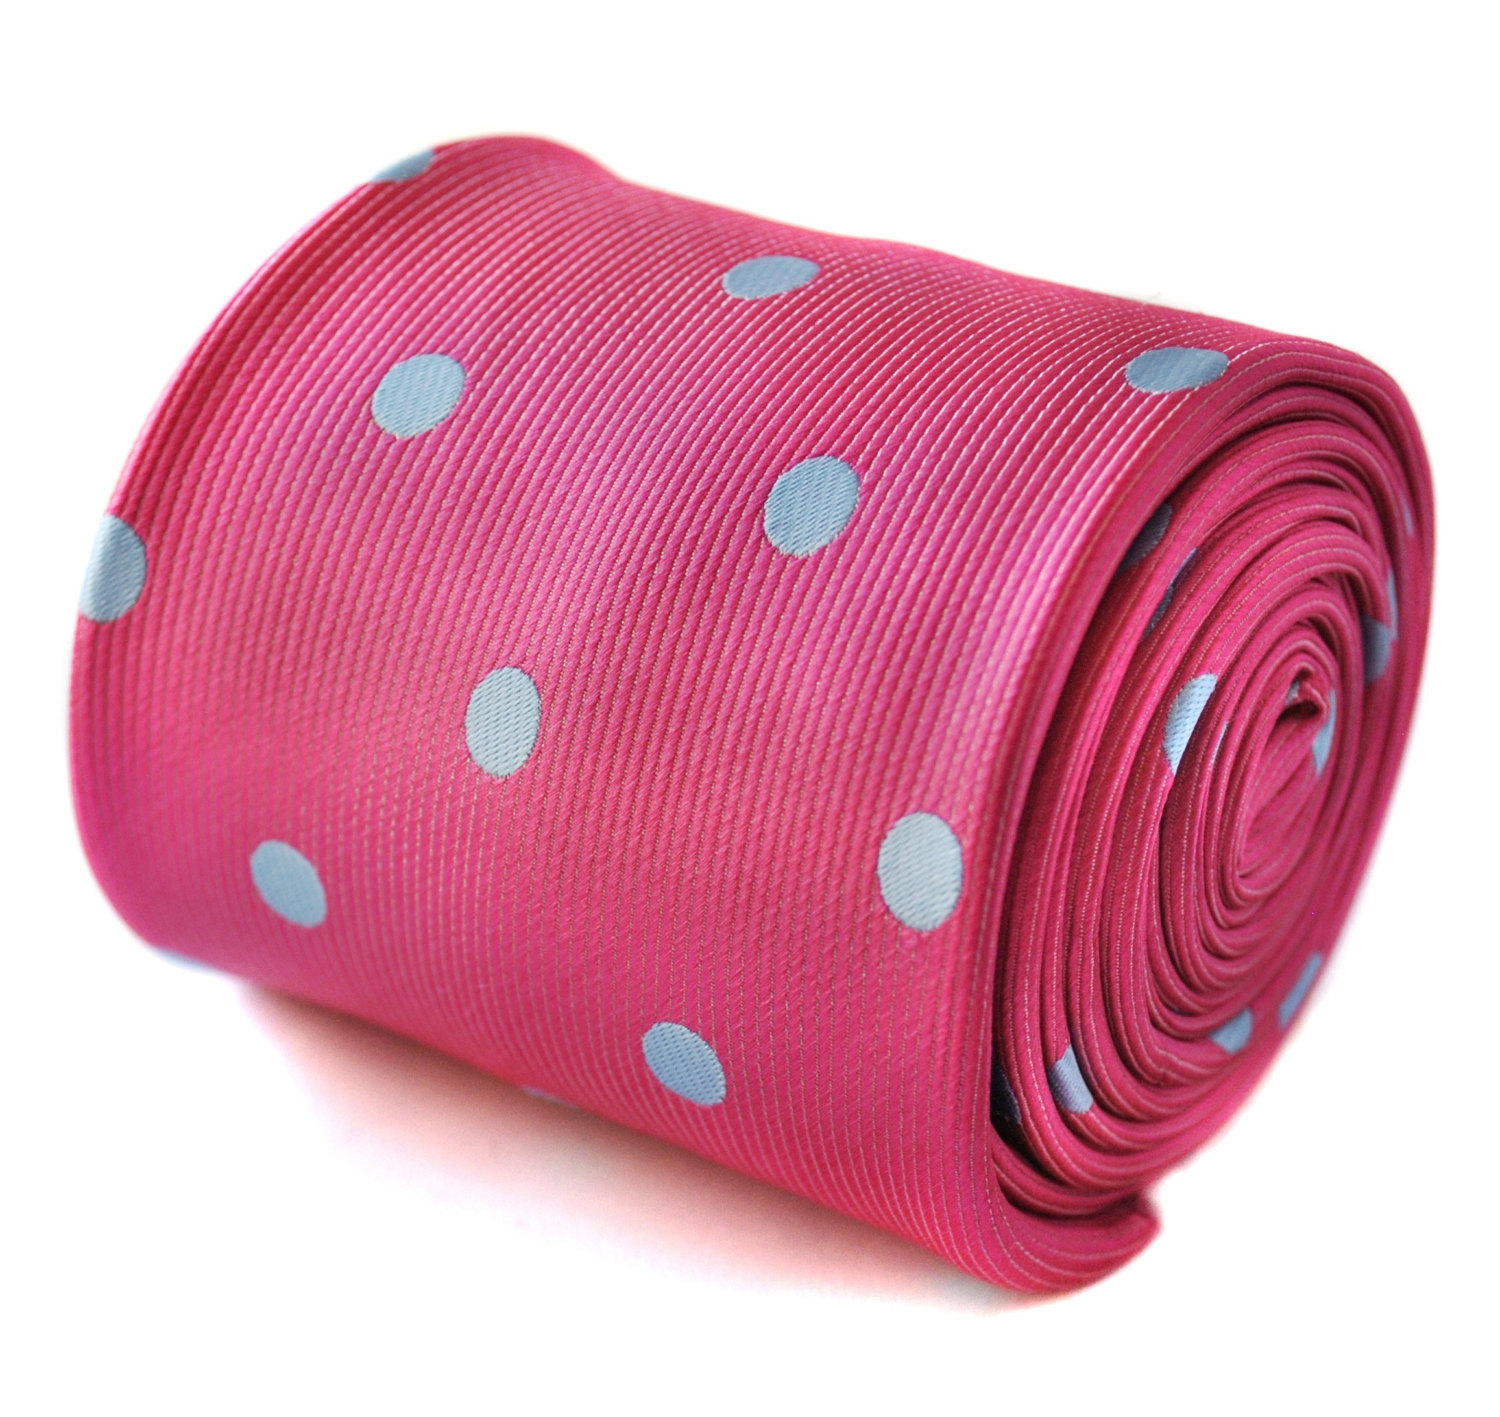 bright pink and light blue polka spot tie with signature floral design to the re